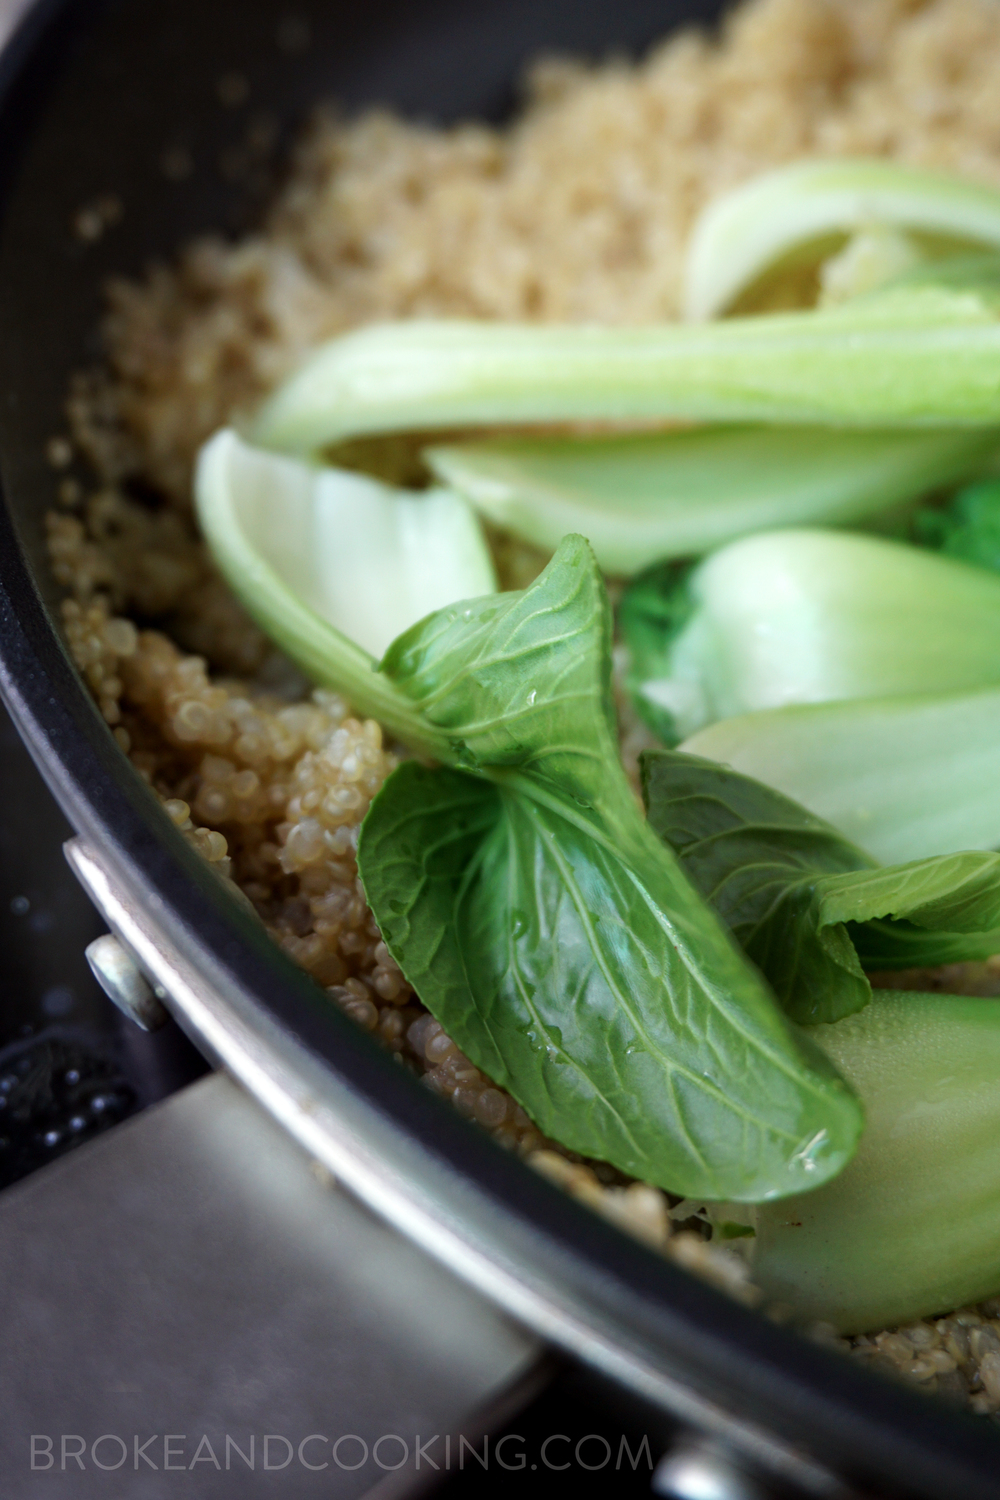 2 Of The Sliced Jalape�o, And Half Of The Green  Onions To The Quinoa Cover And Allow The Bok Choy To Wilt